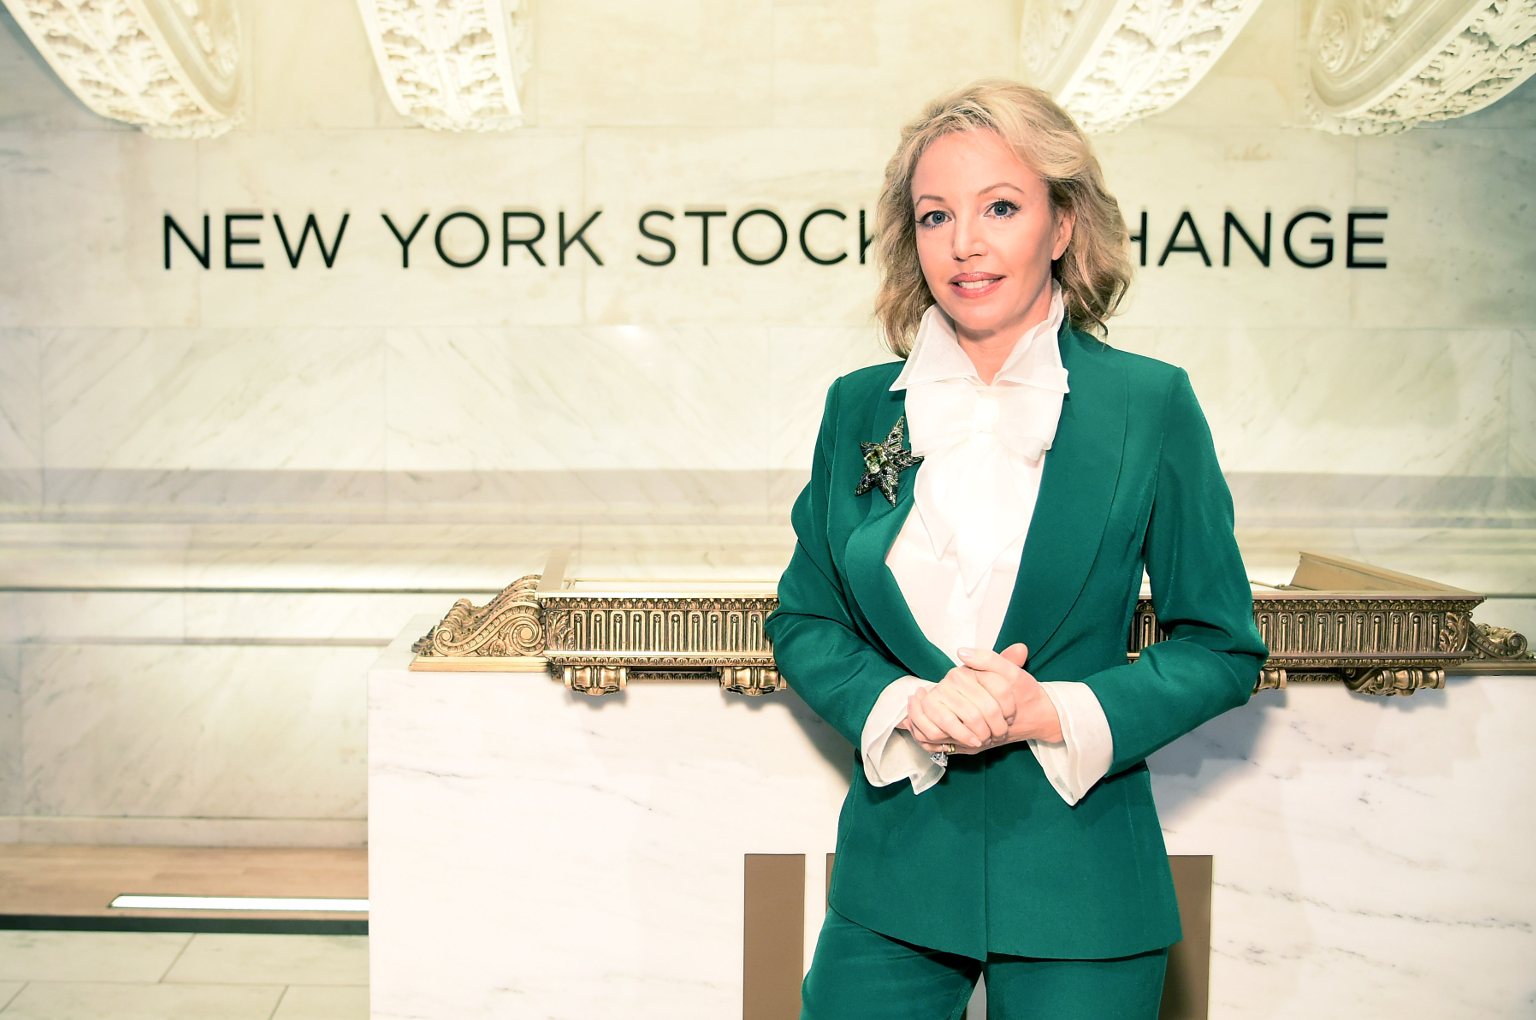 Princess-Camilla-of-Bourbon-Two-Sicilies-at-NYSE